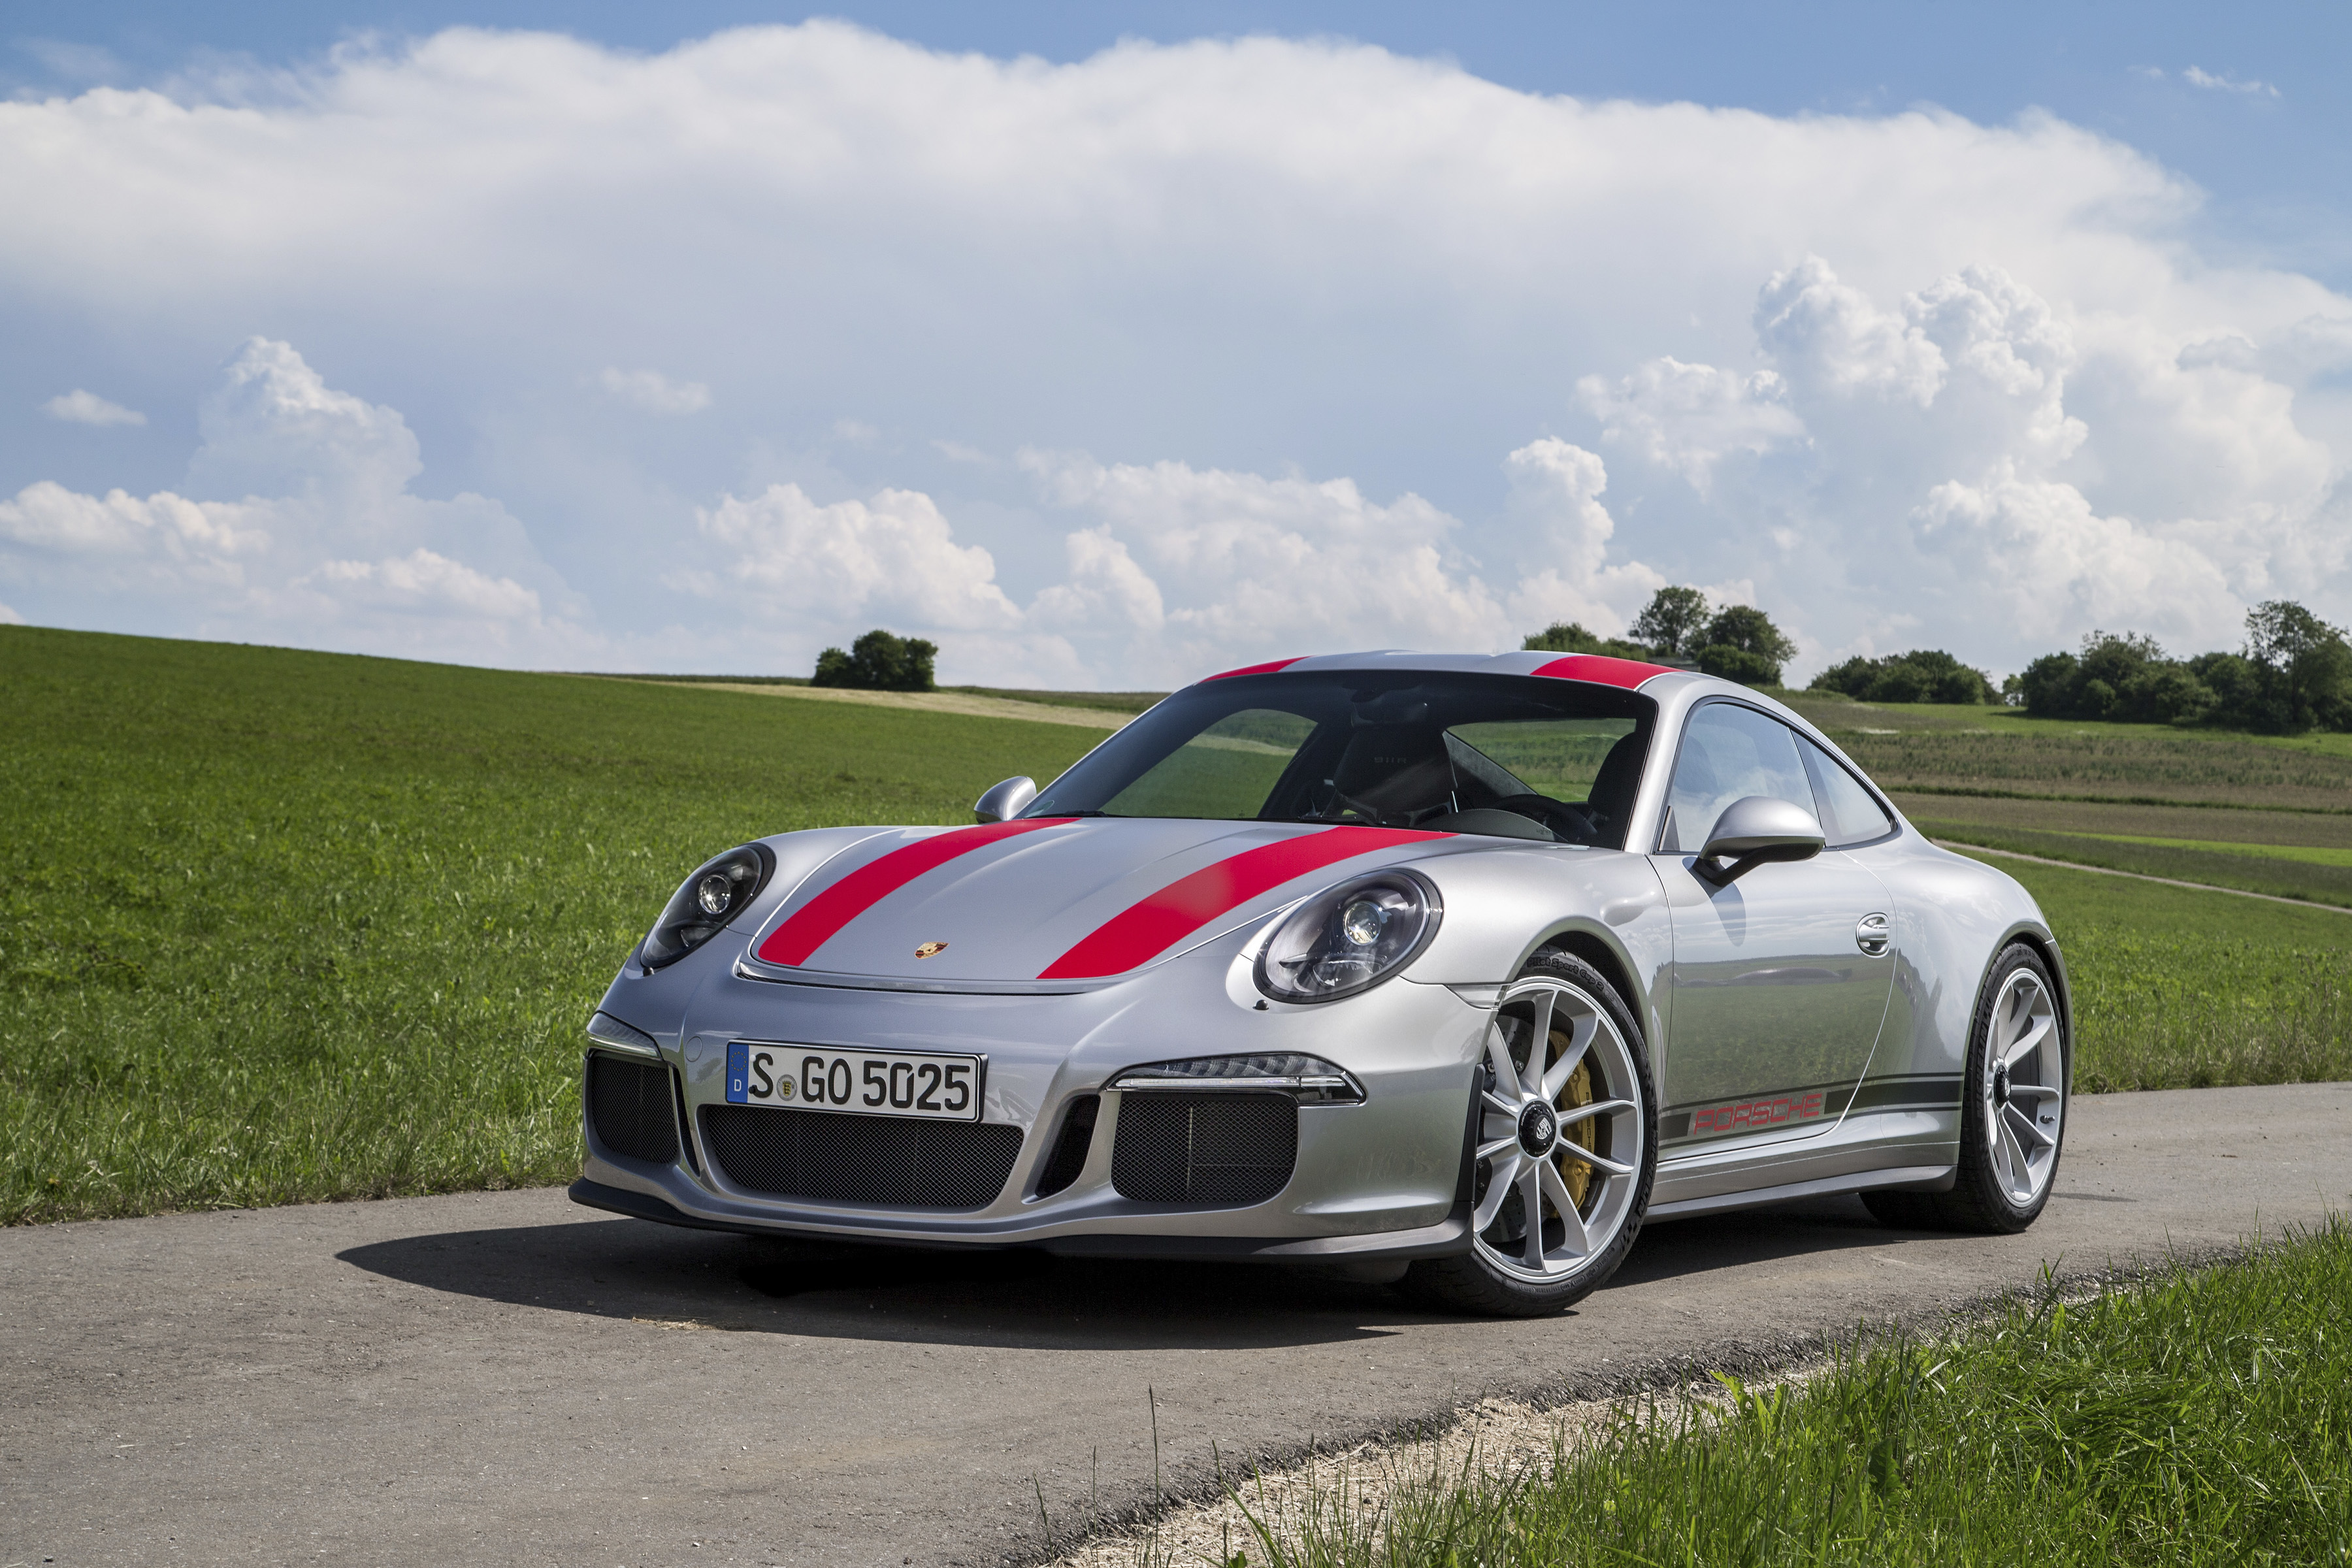 Porsche 911 Turbo Wallpapers Pictures Images 3600x2400